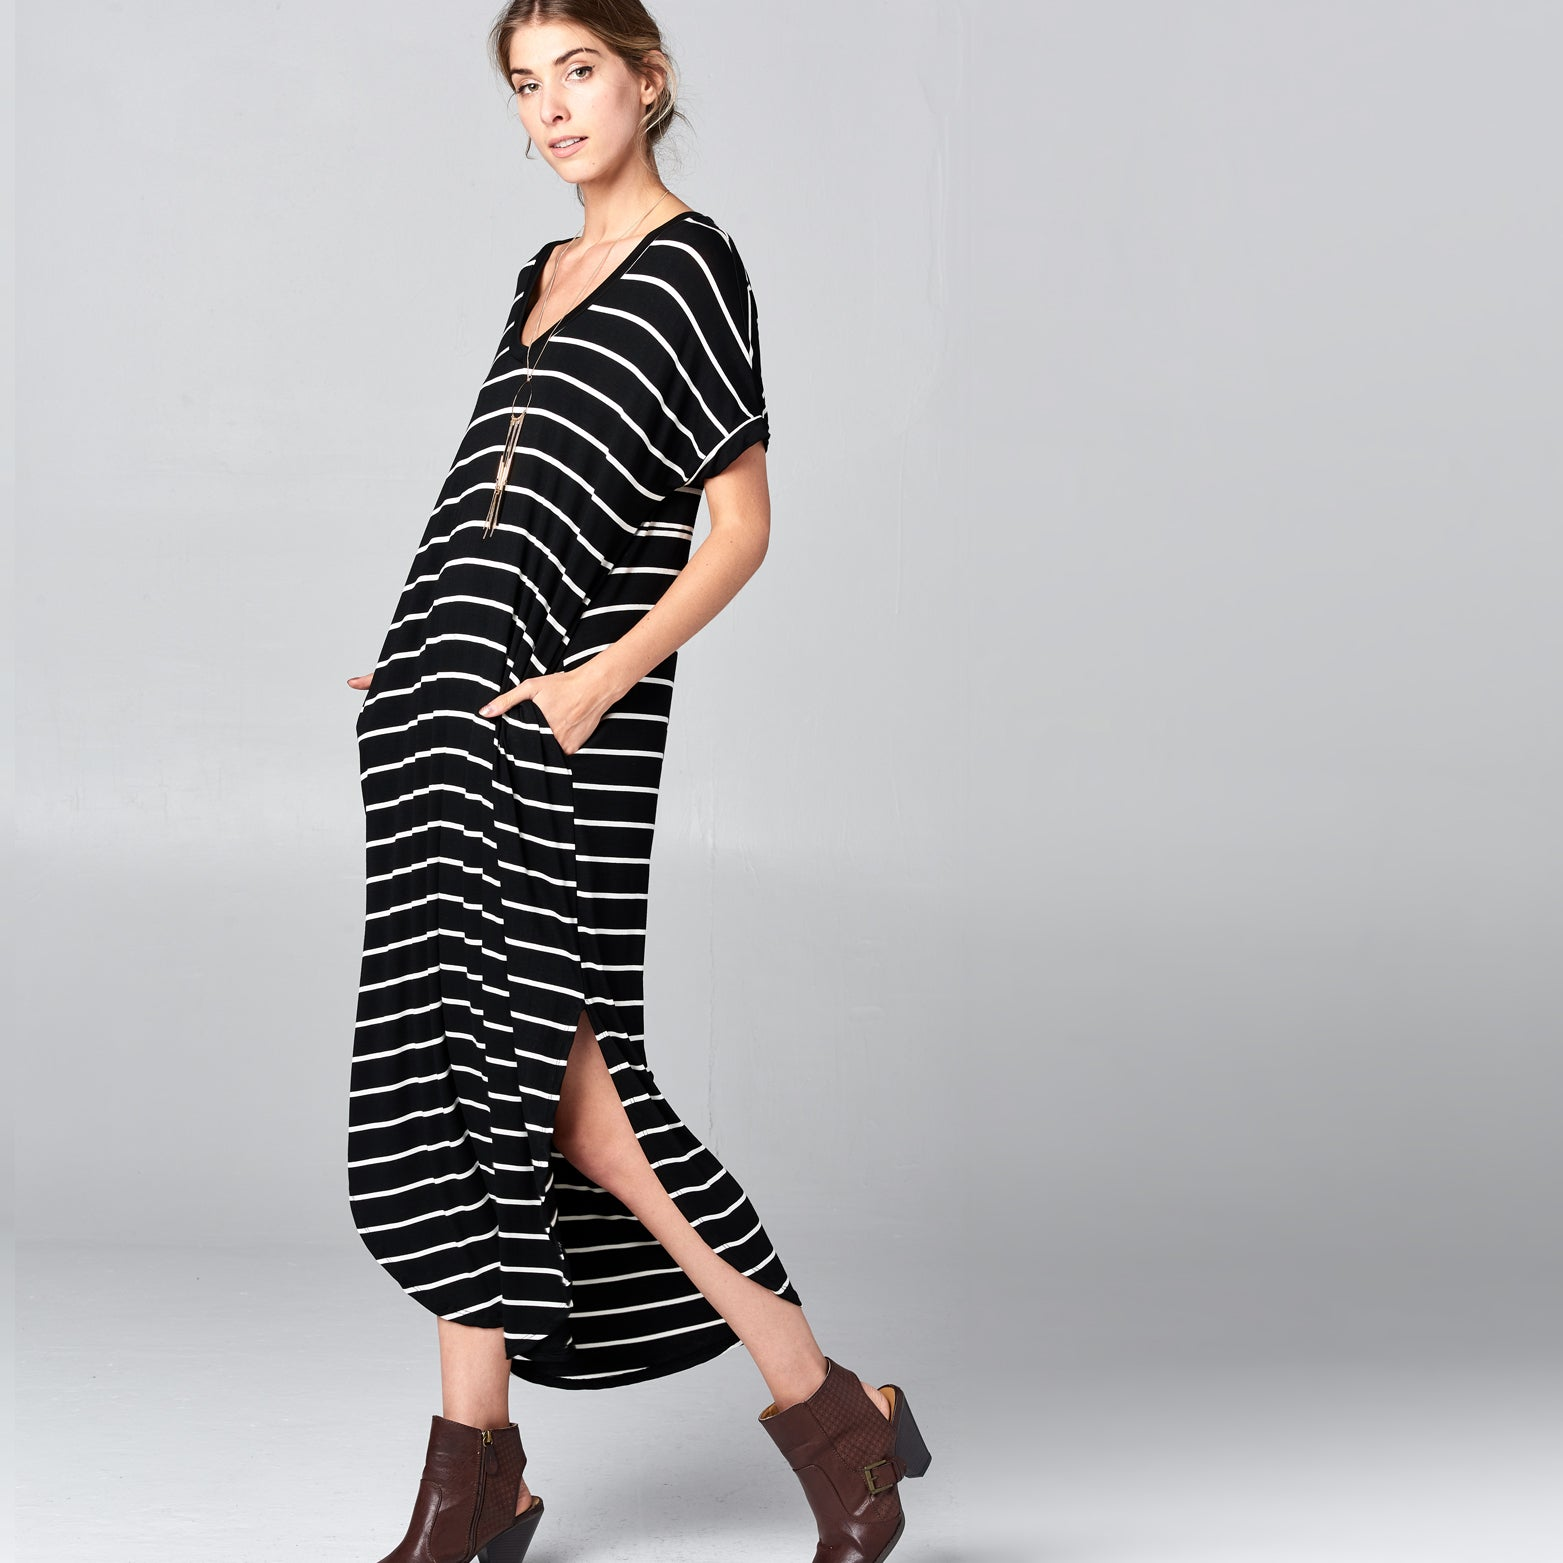 RL Black White Striped Maxi Dress